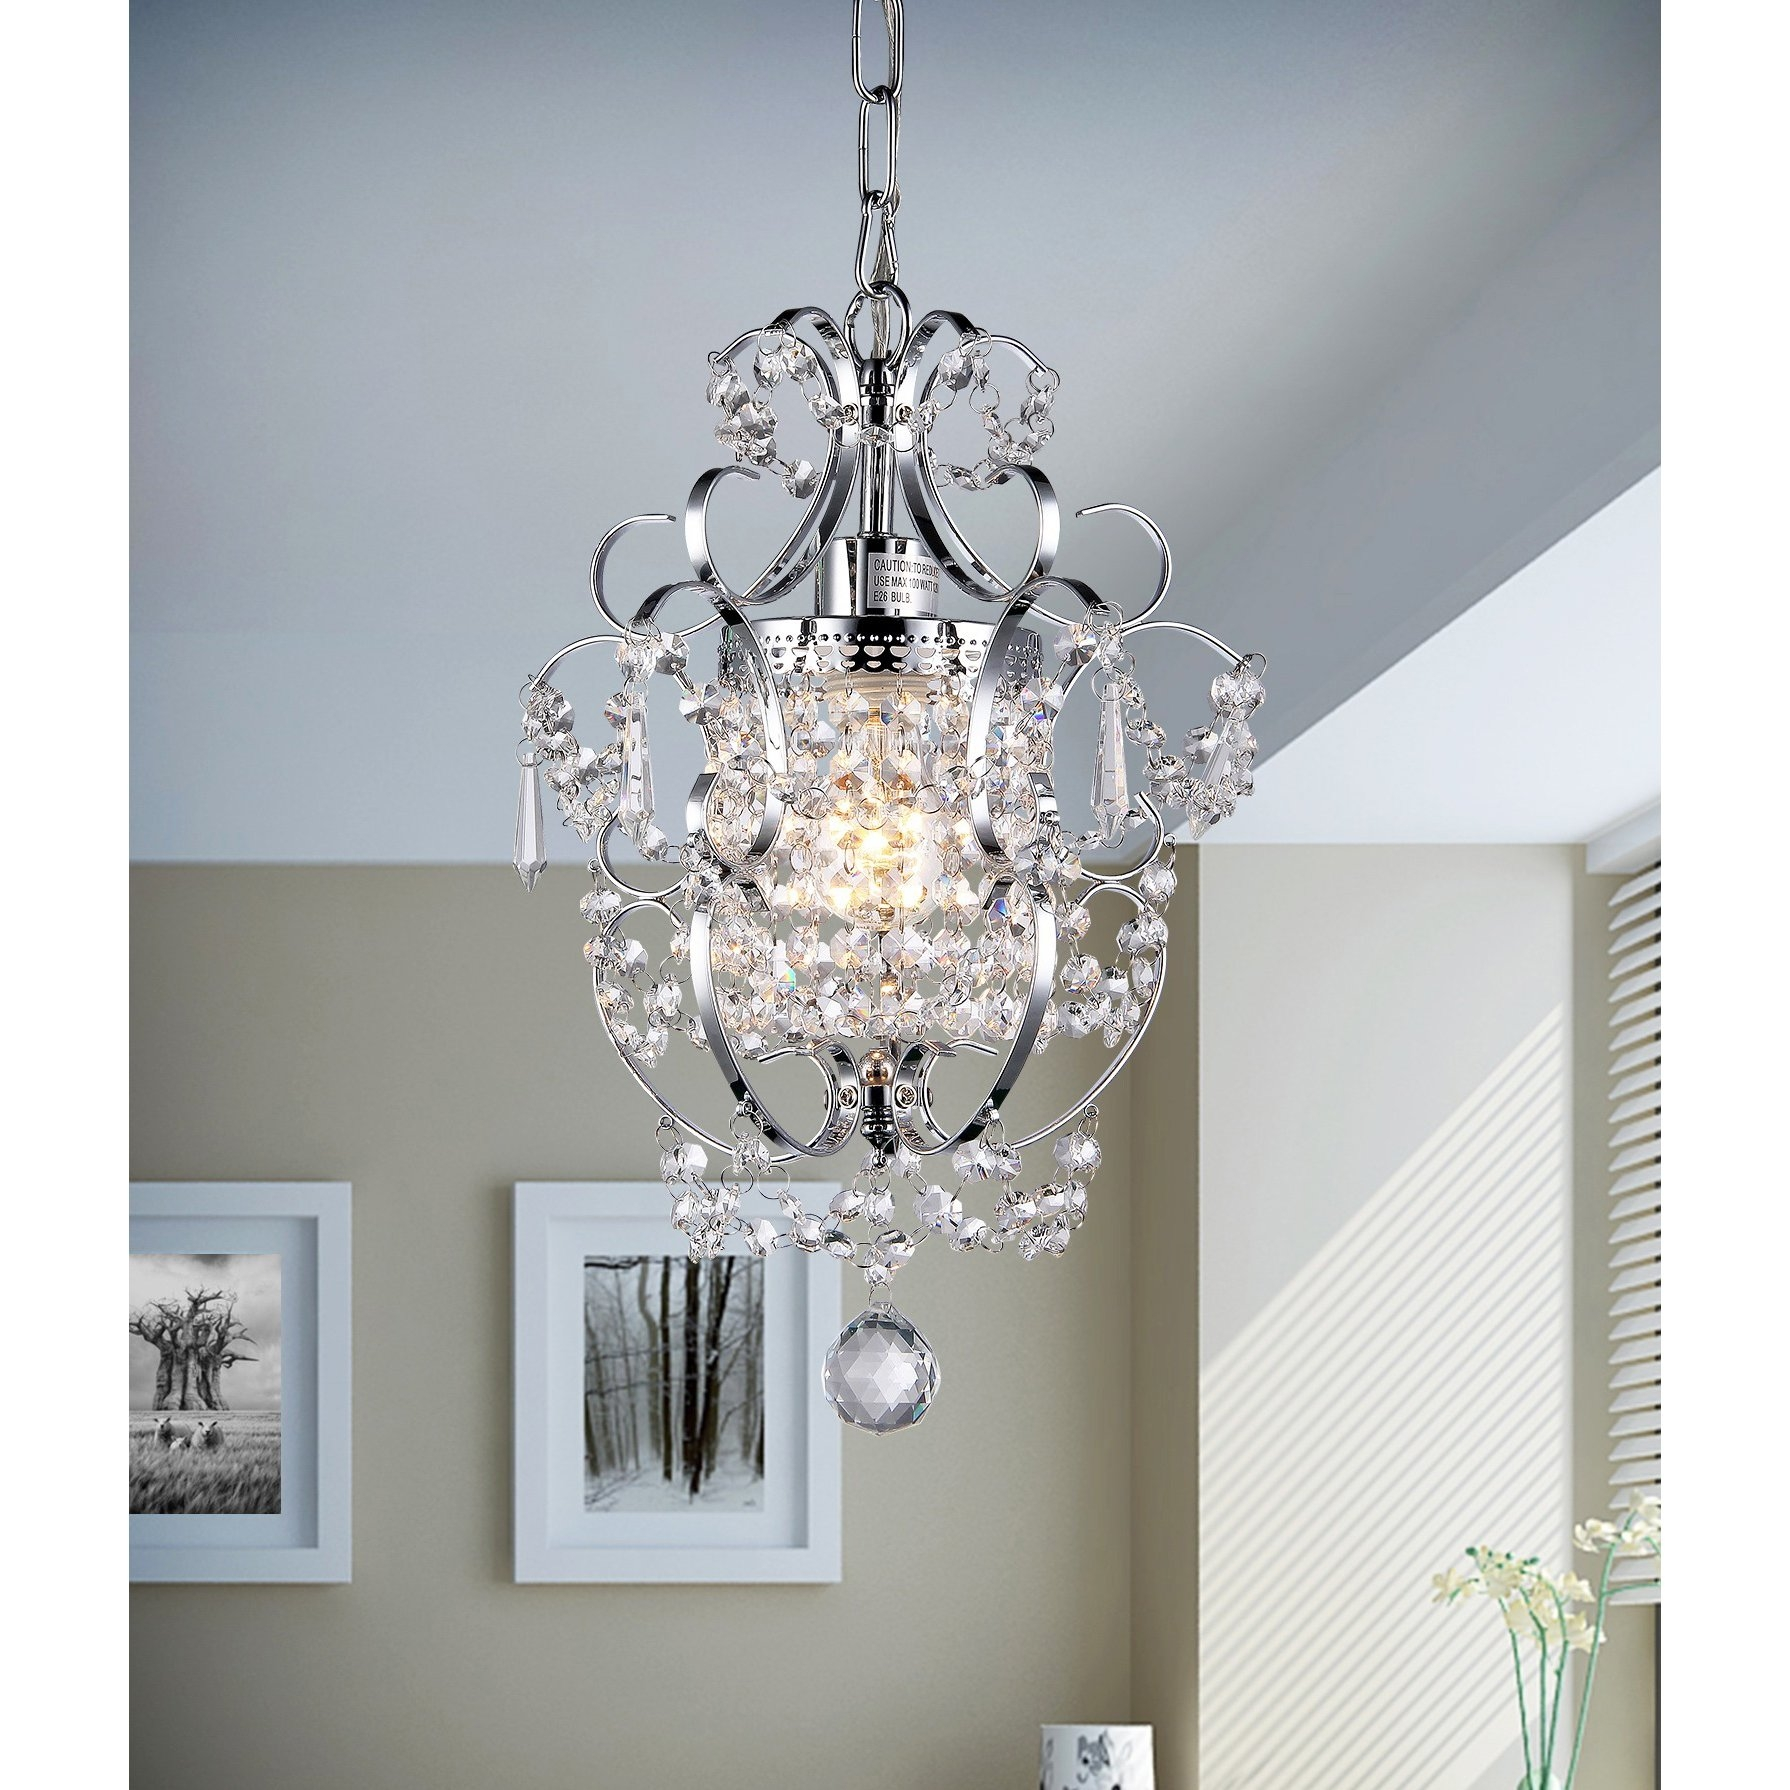 House Of Hampton Renee 1 Light Crystal Chandelier Reviews Wayfair Intended For 3 Tier Crystal Chandelier (Image 10 of 15)